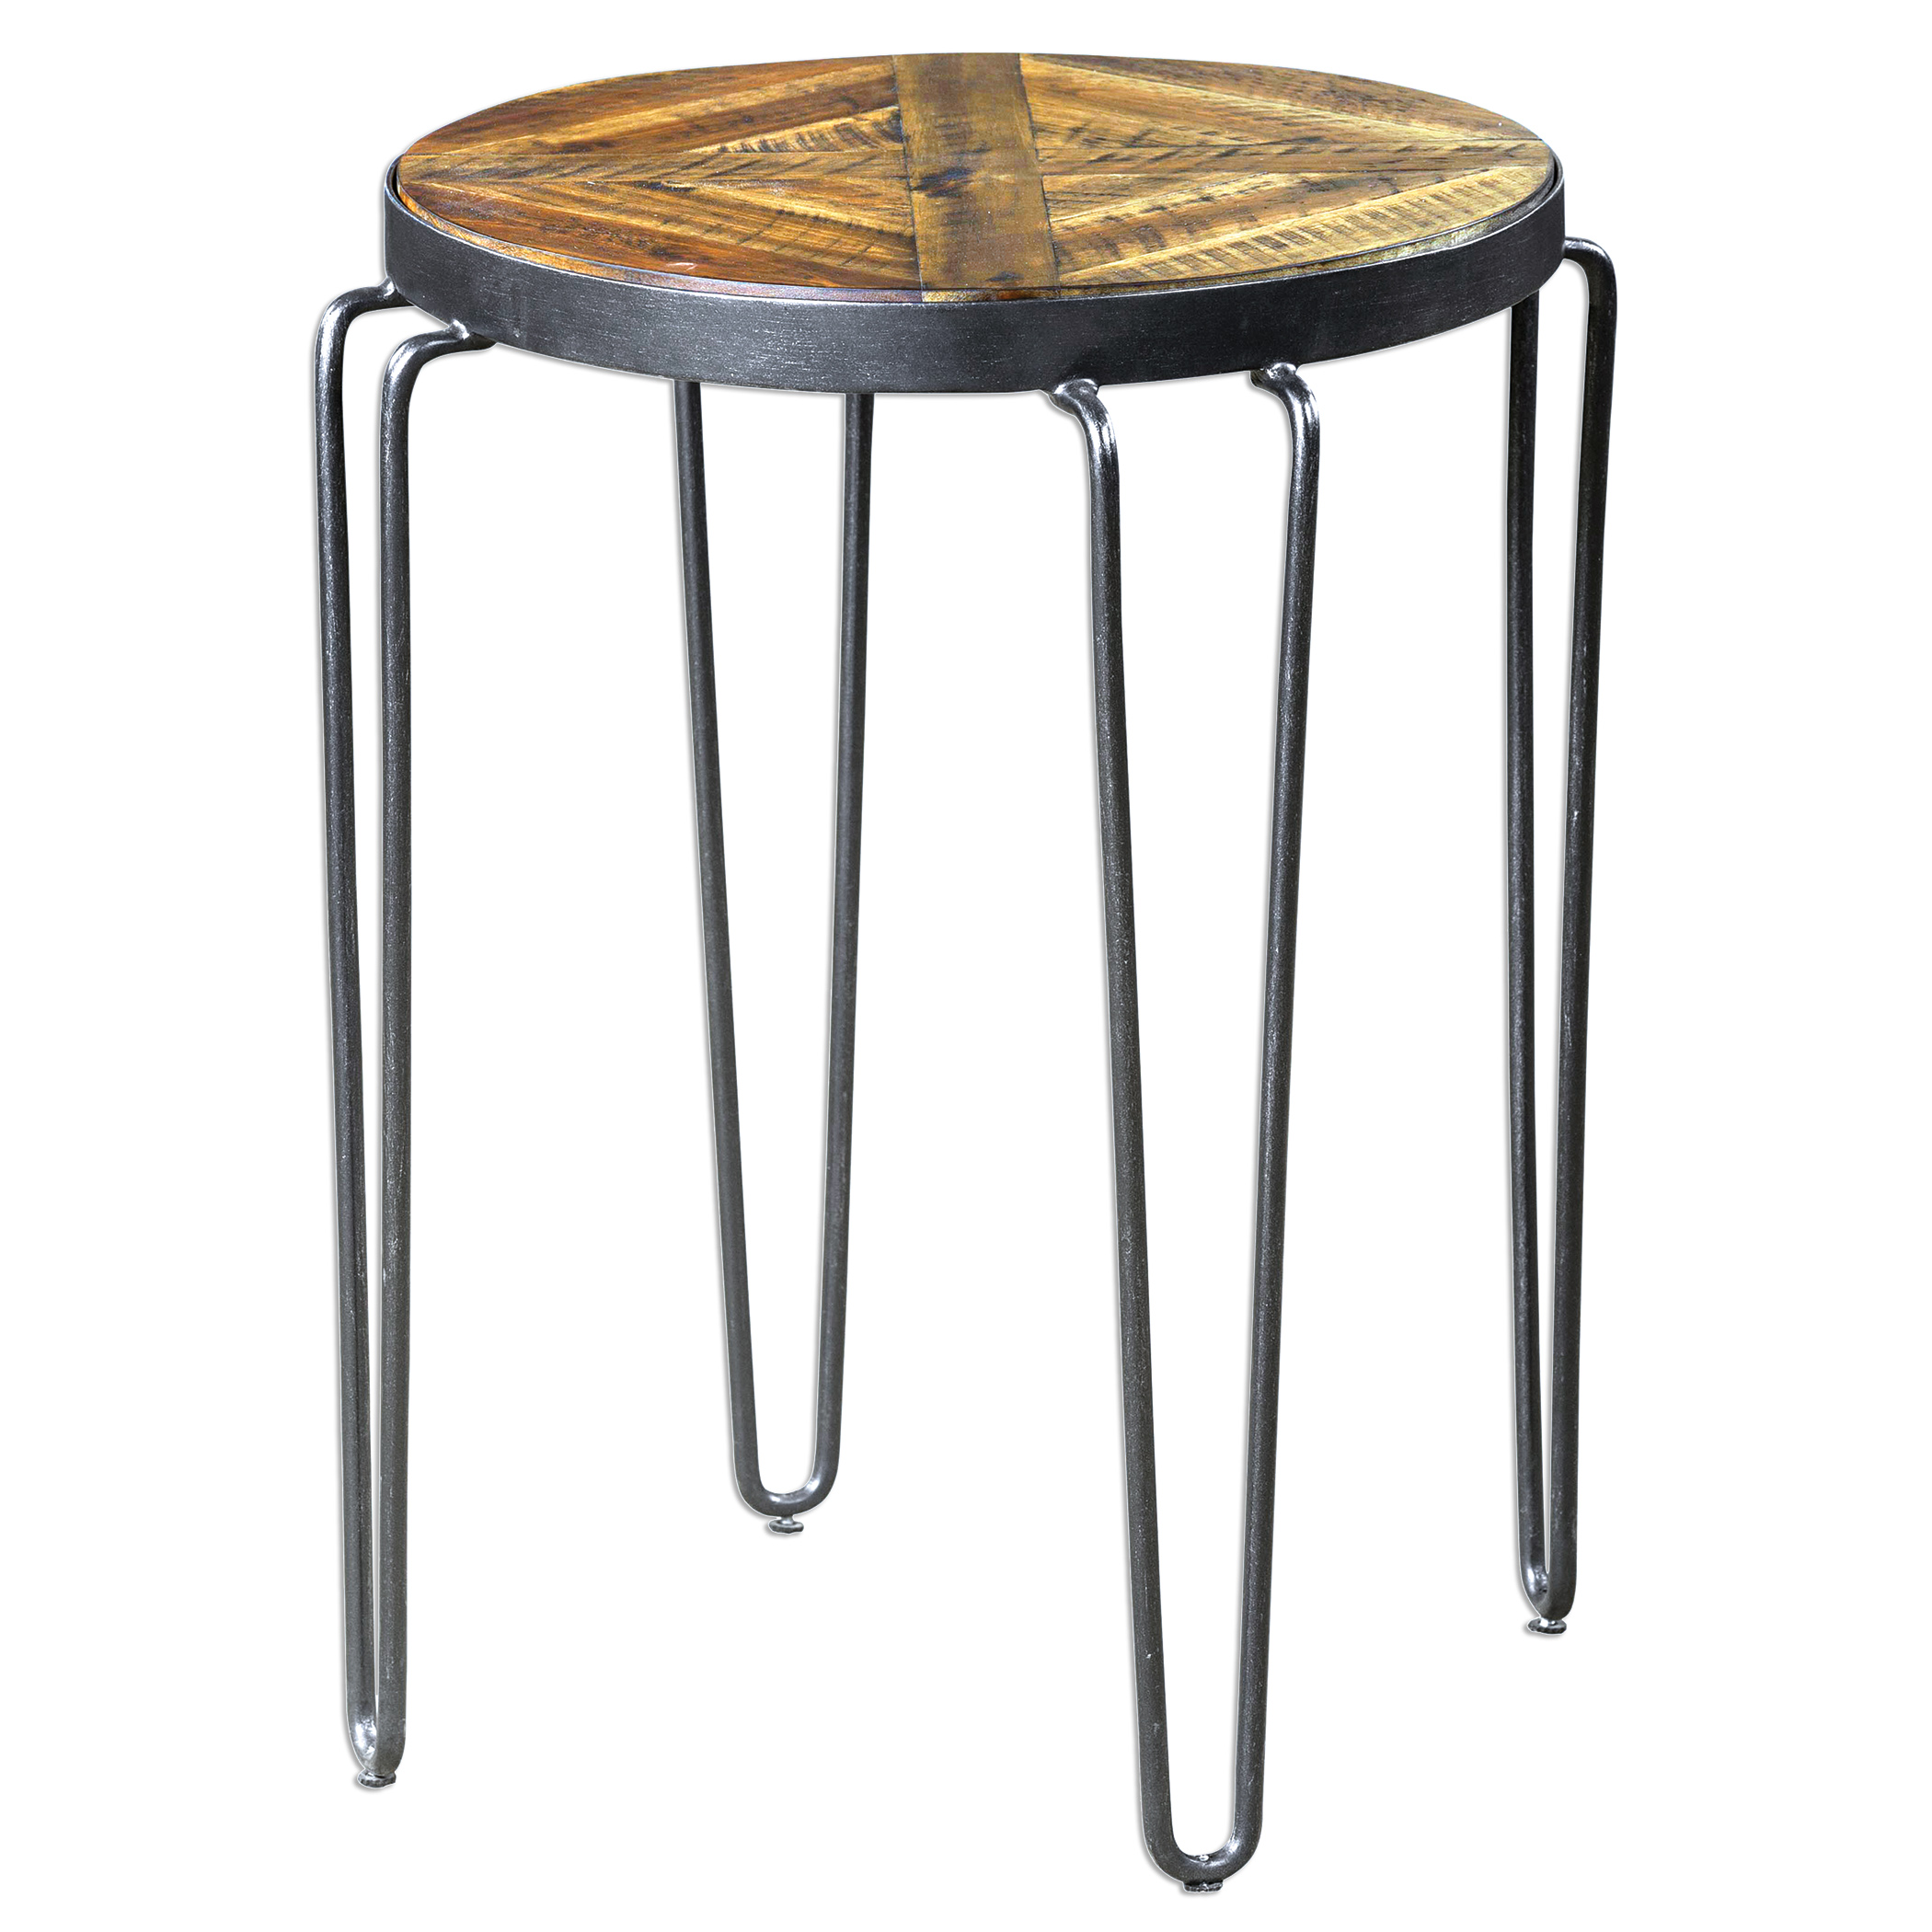 Uttermost Accent Furniture Stelios Round Accent Table - Item Number: 25907